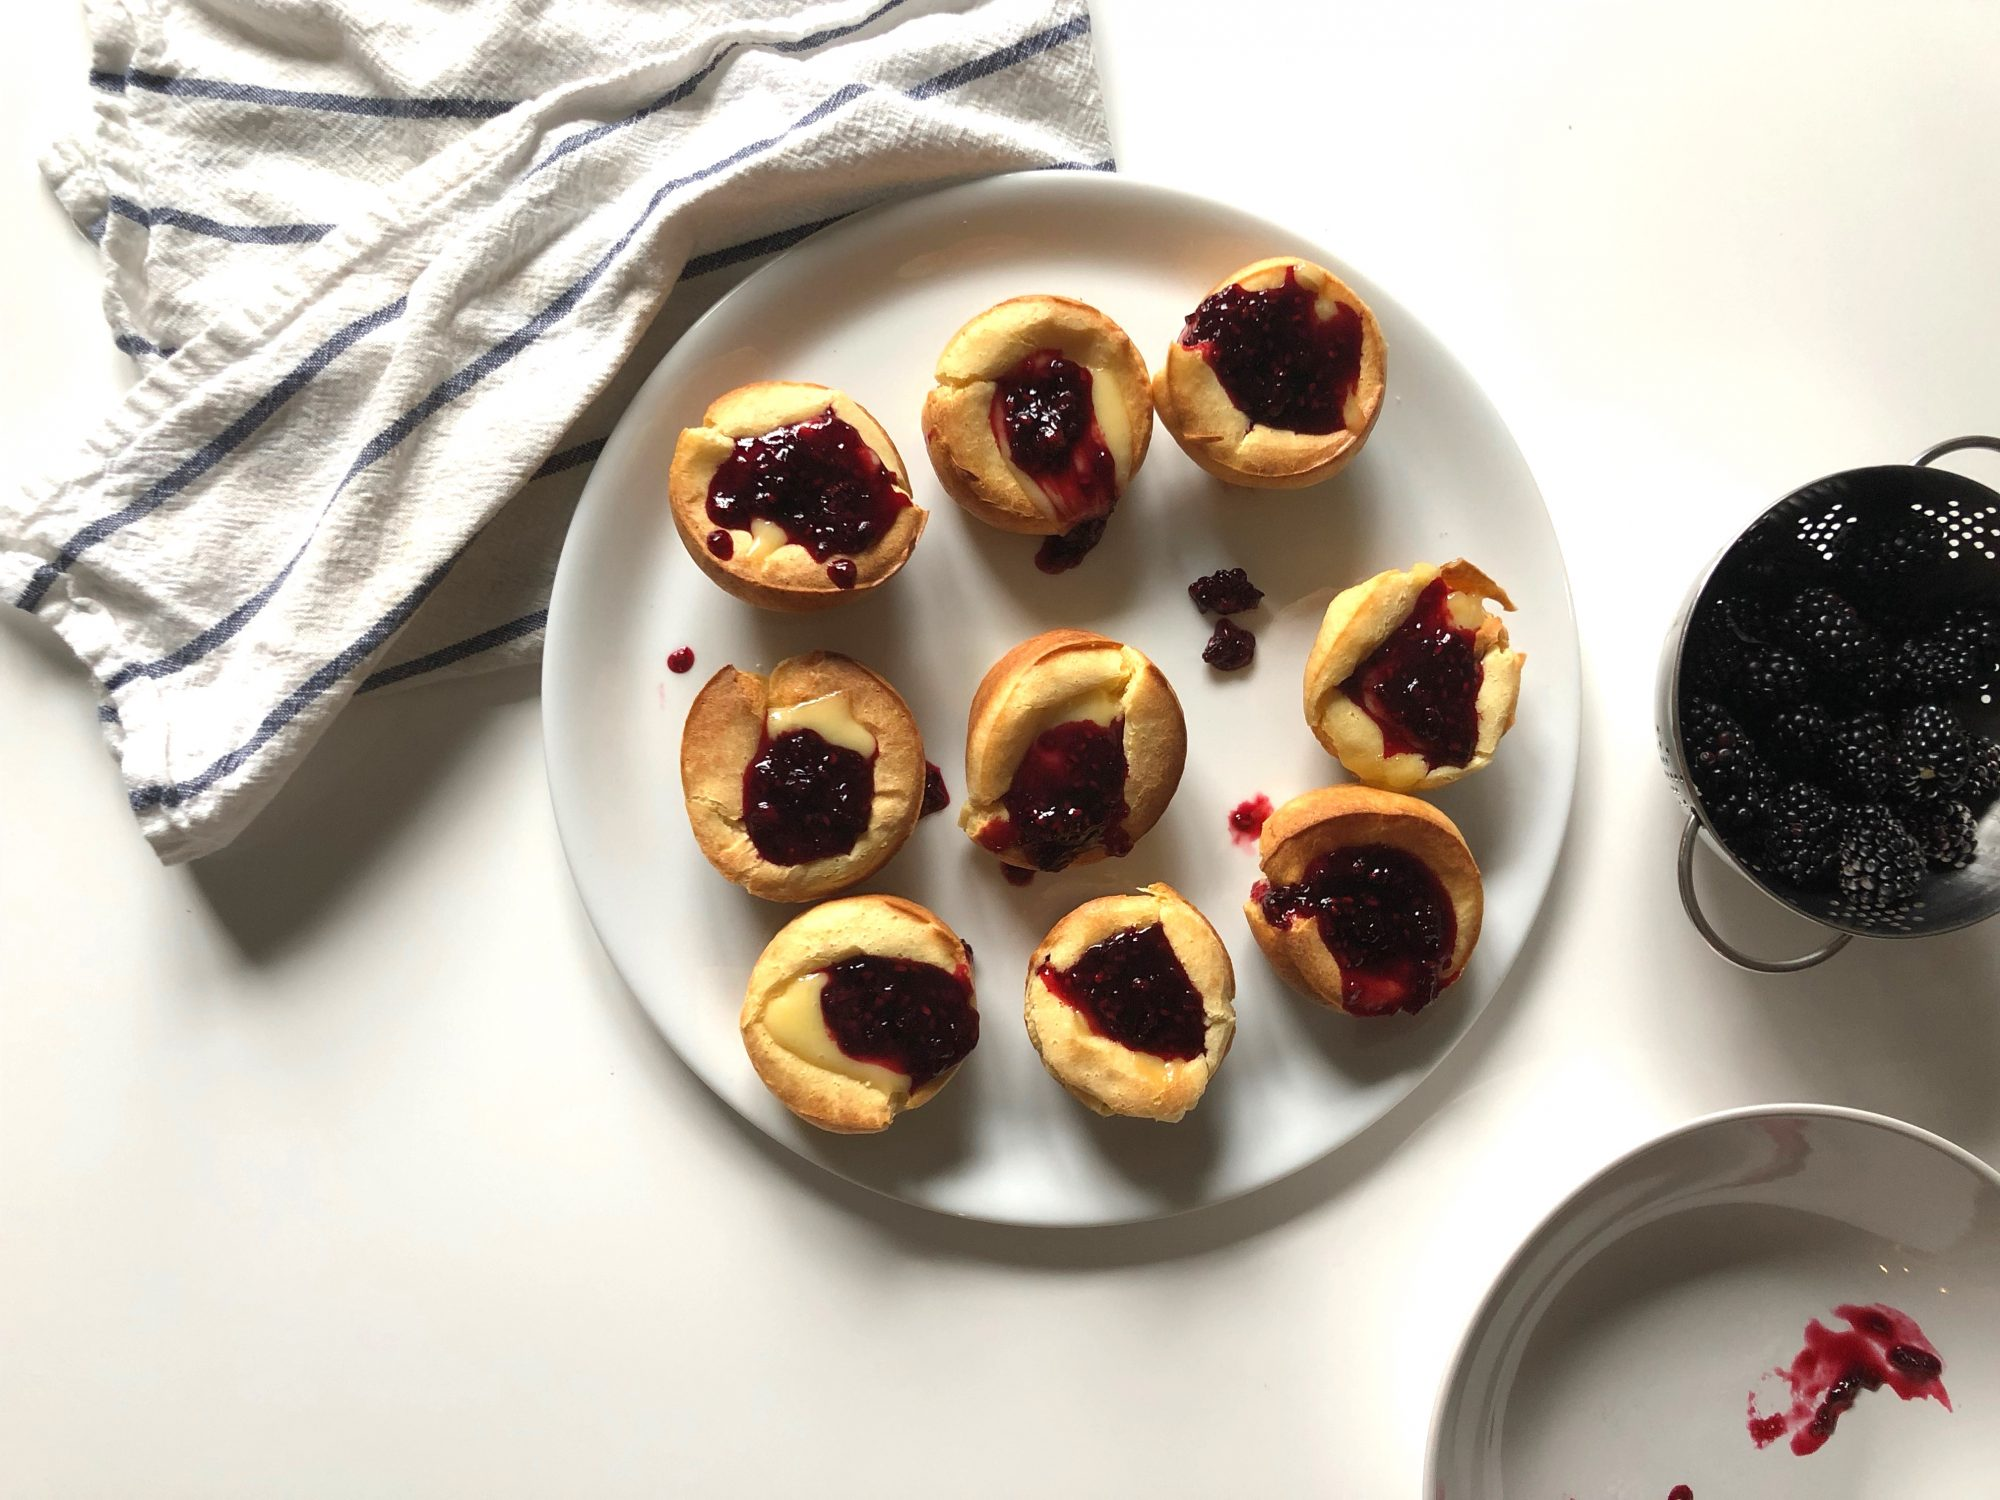 Chrissy Teigen's Fluffy Popovers with Brie and Blackberry Jam